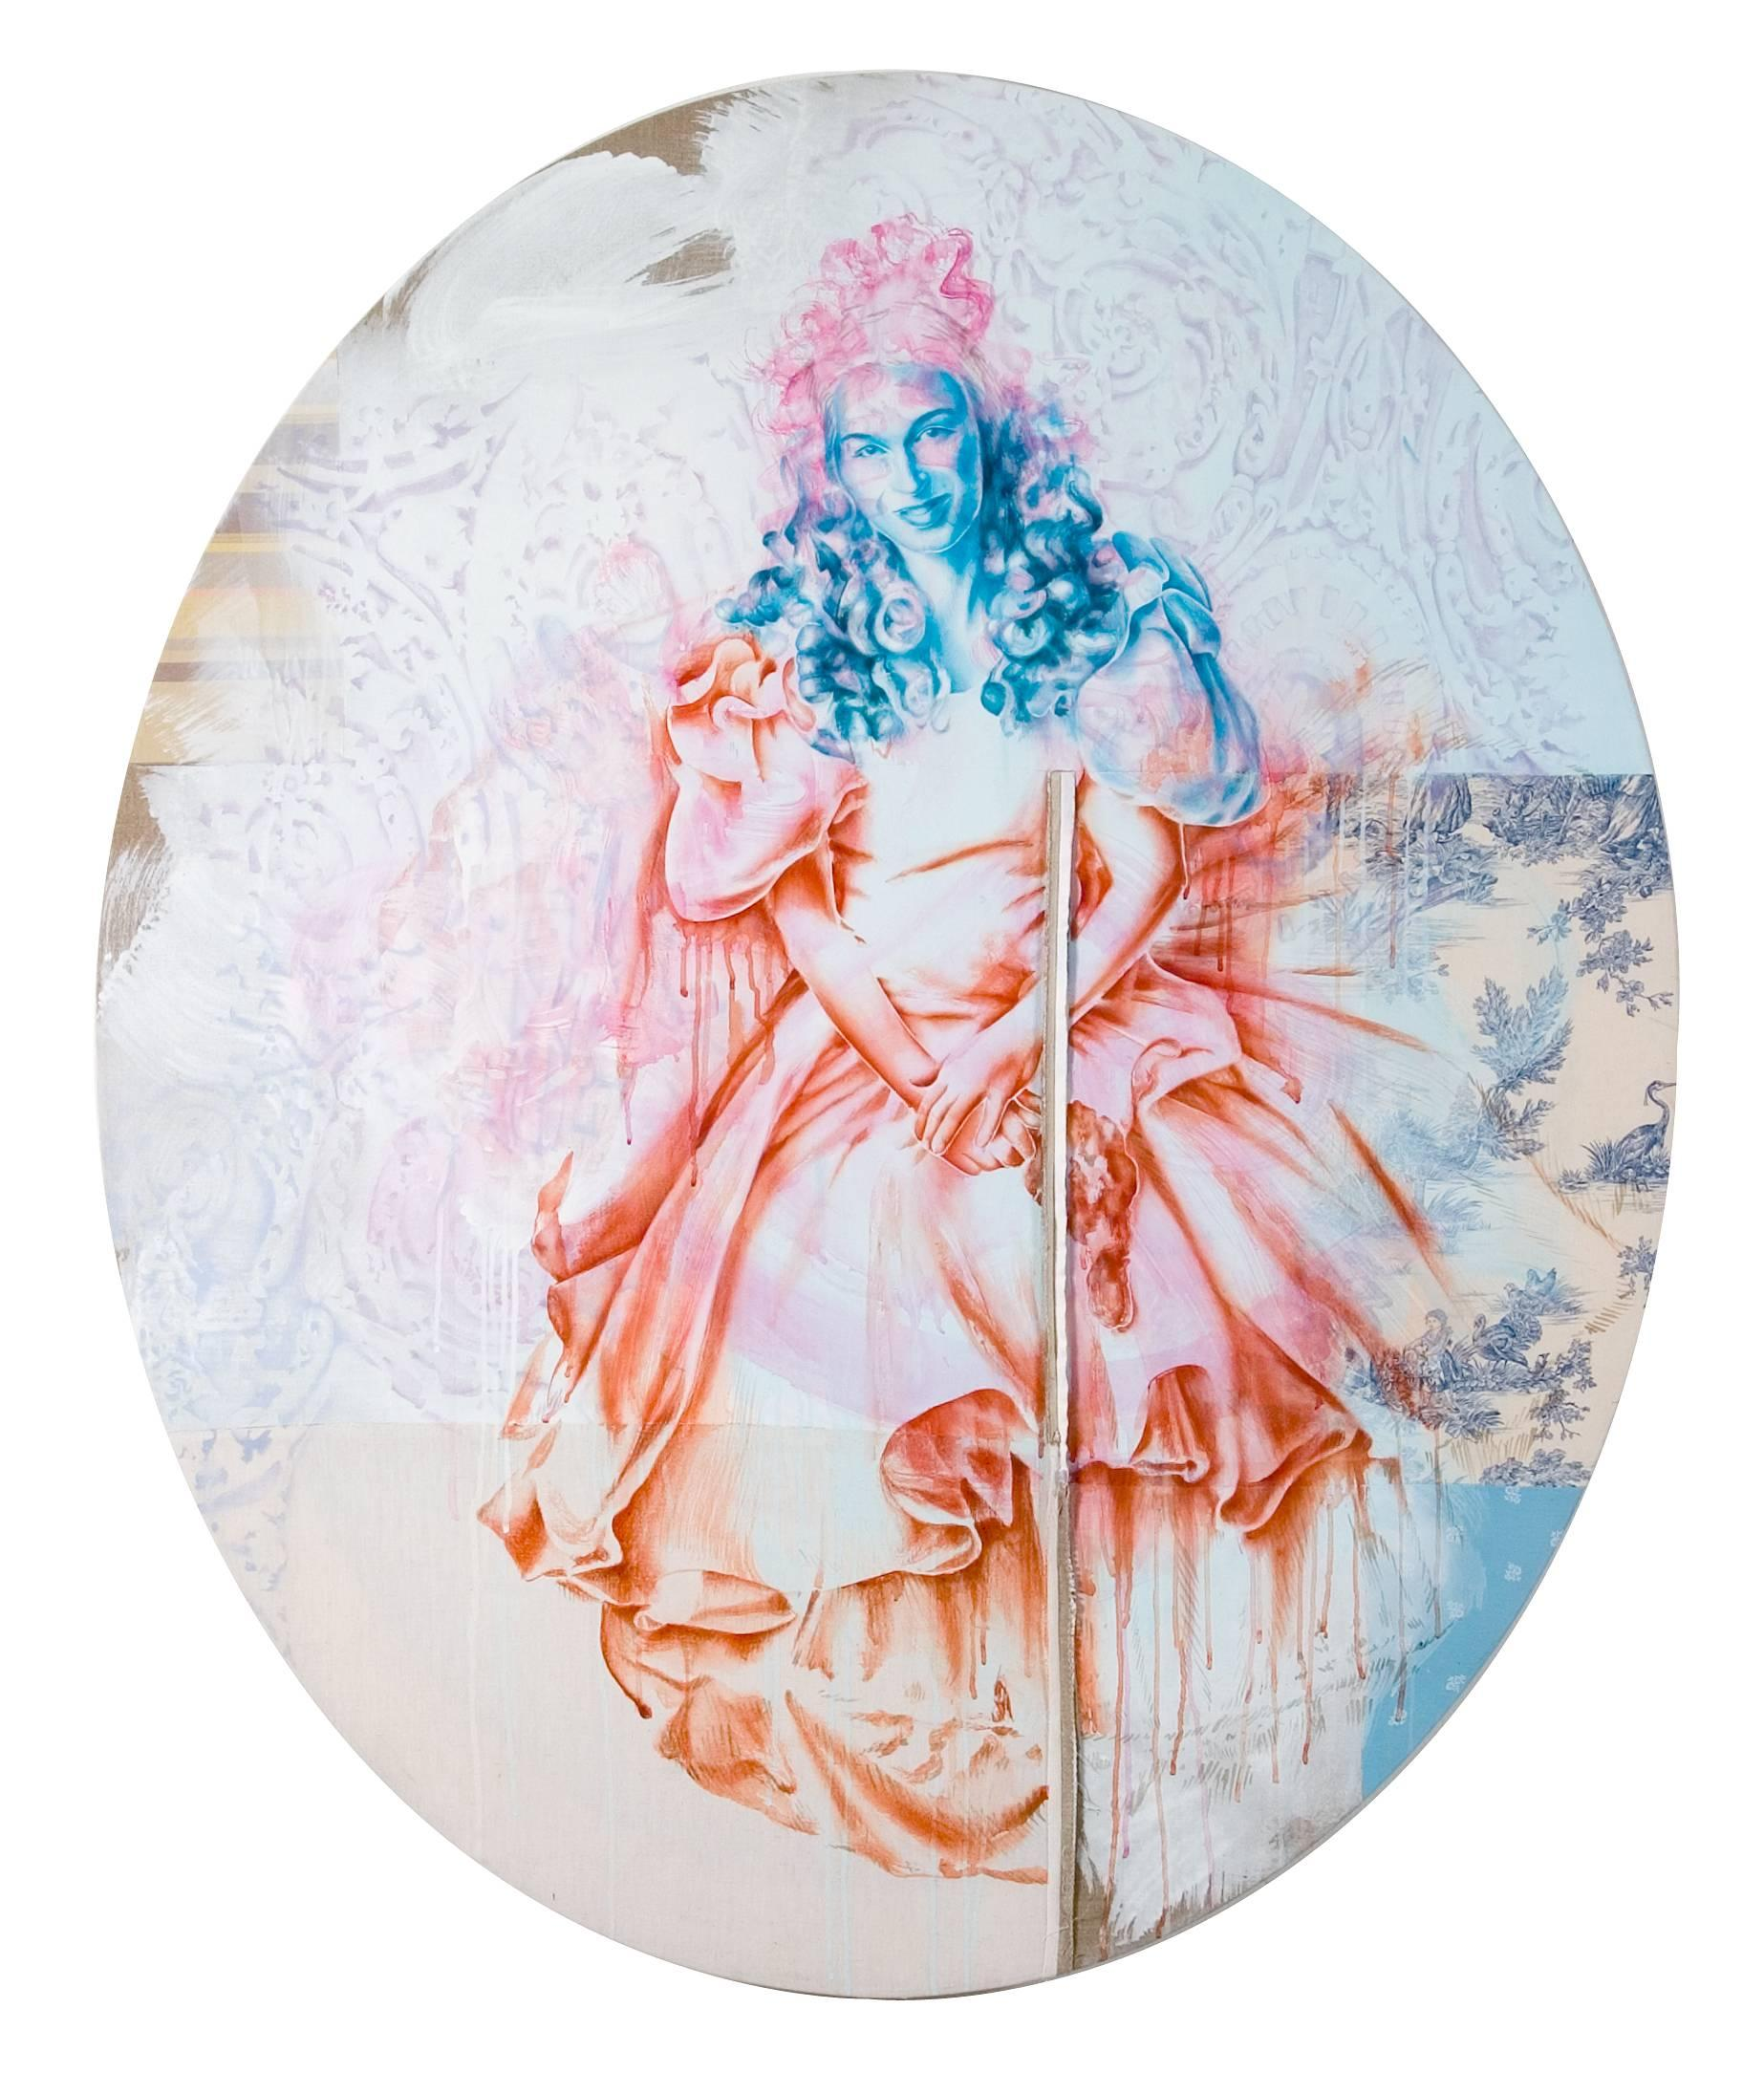 Fides Becker - Robe 4, Painting For Sale at 1stdibs